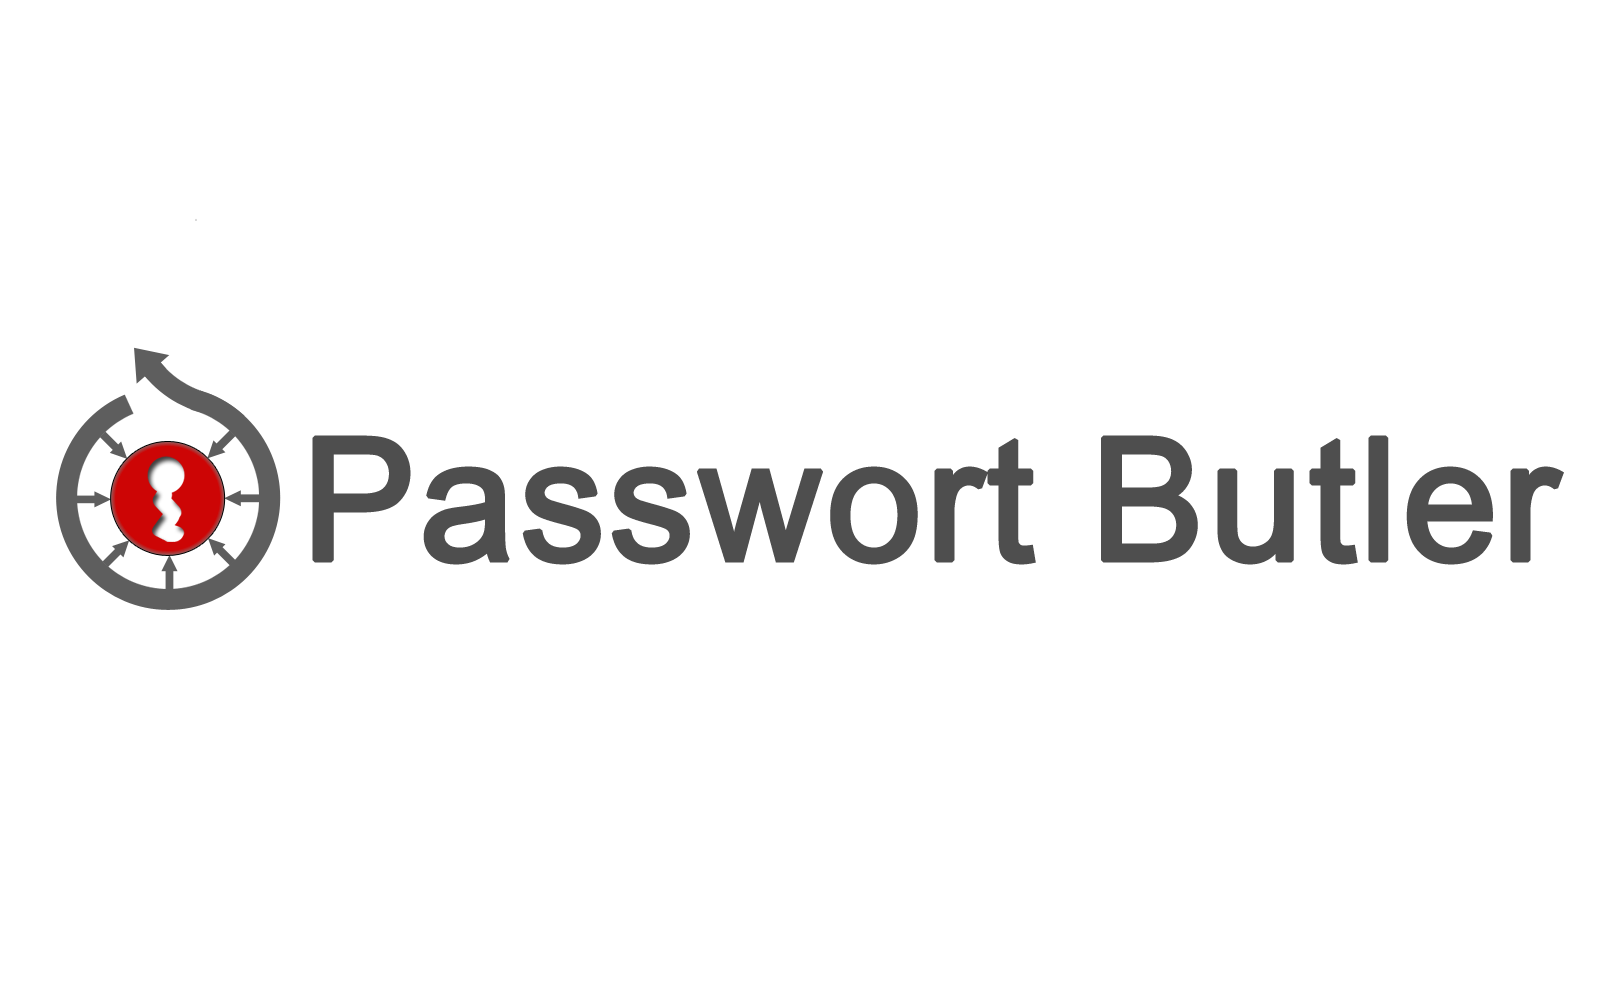 PasswortButler